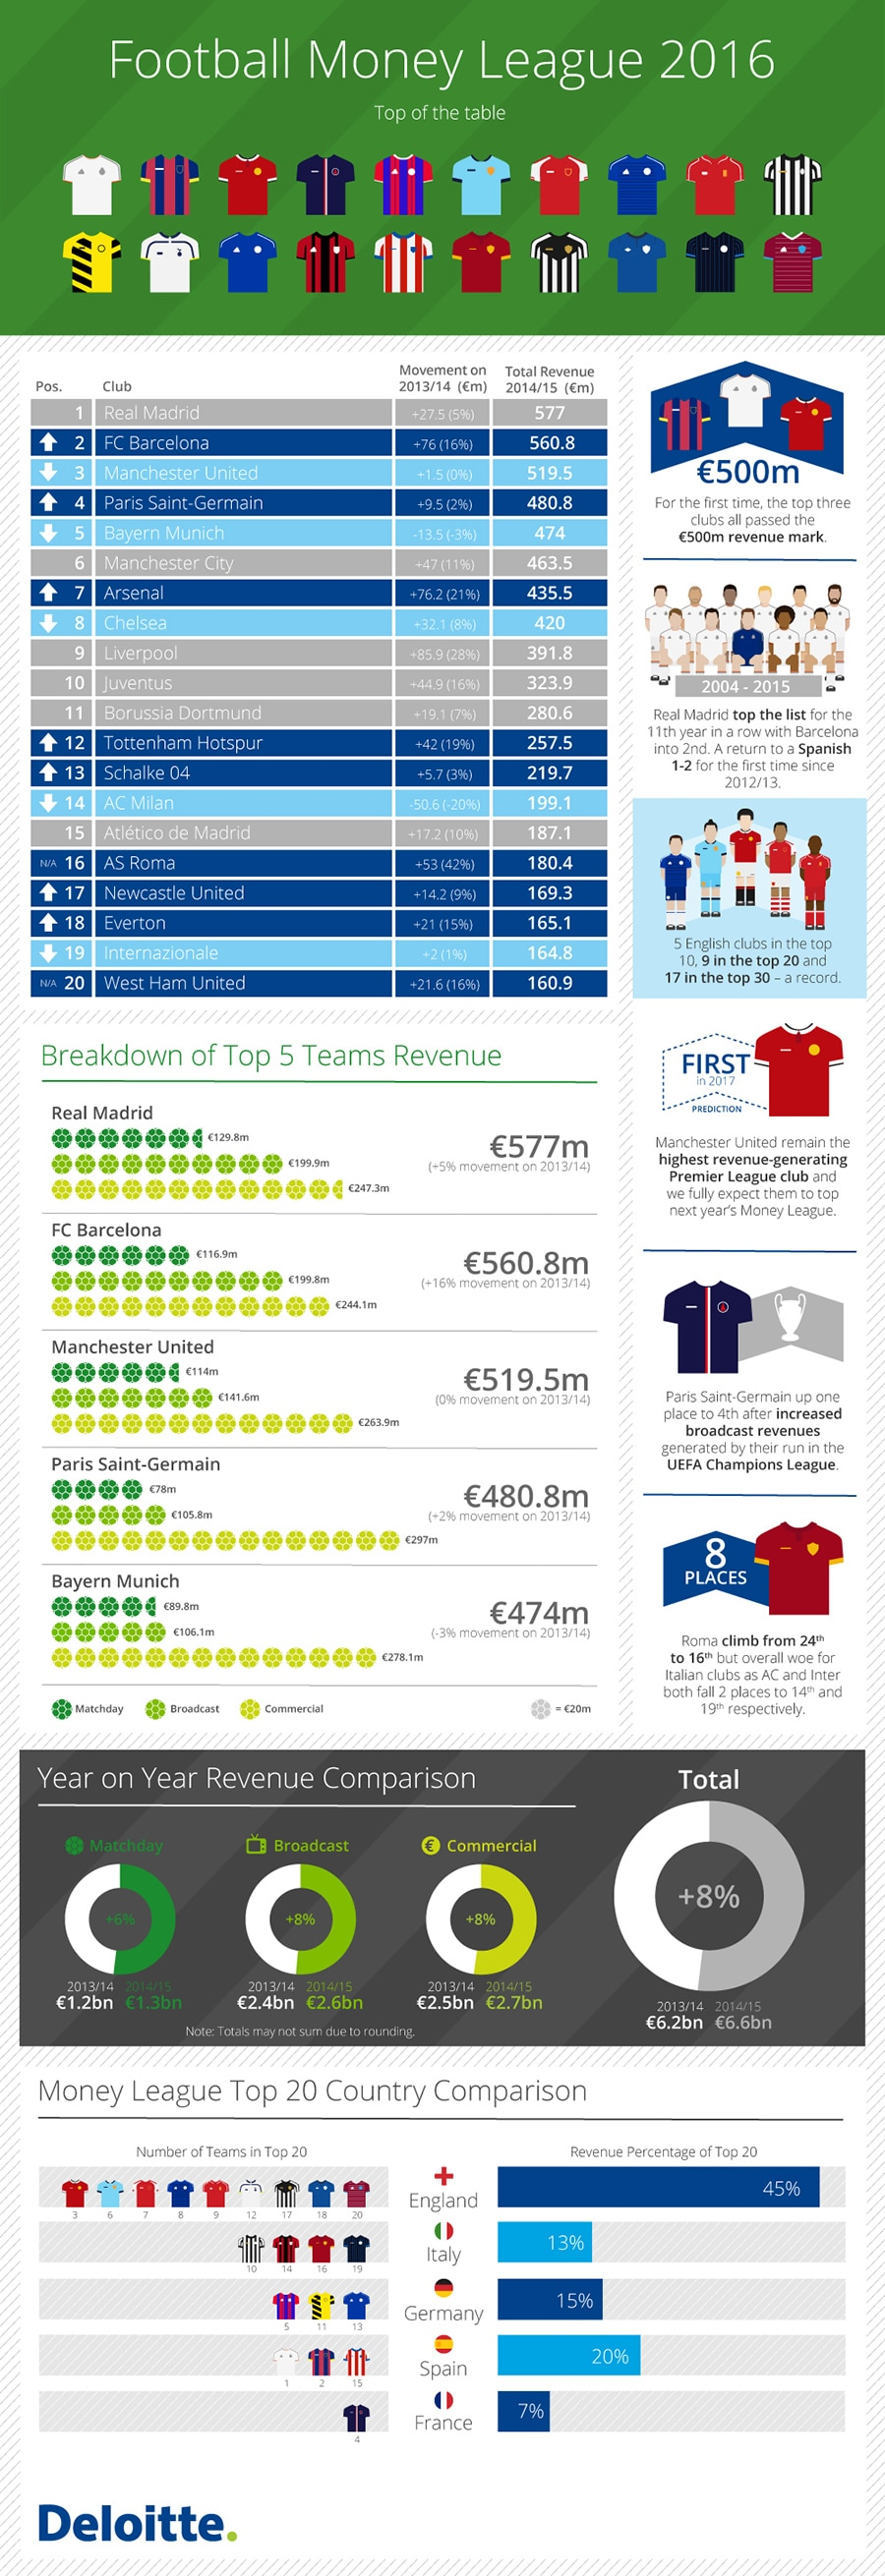 Deloitte Football Money League 2016 infographic